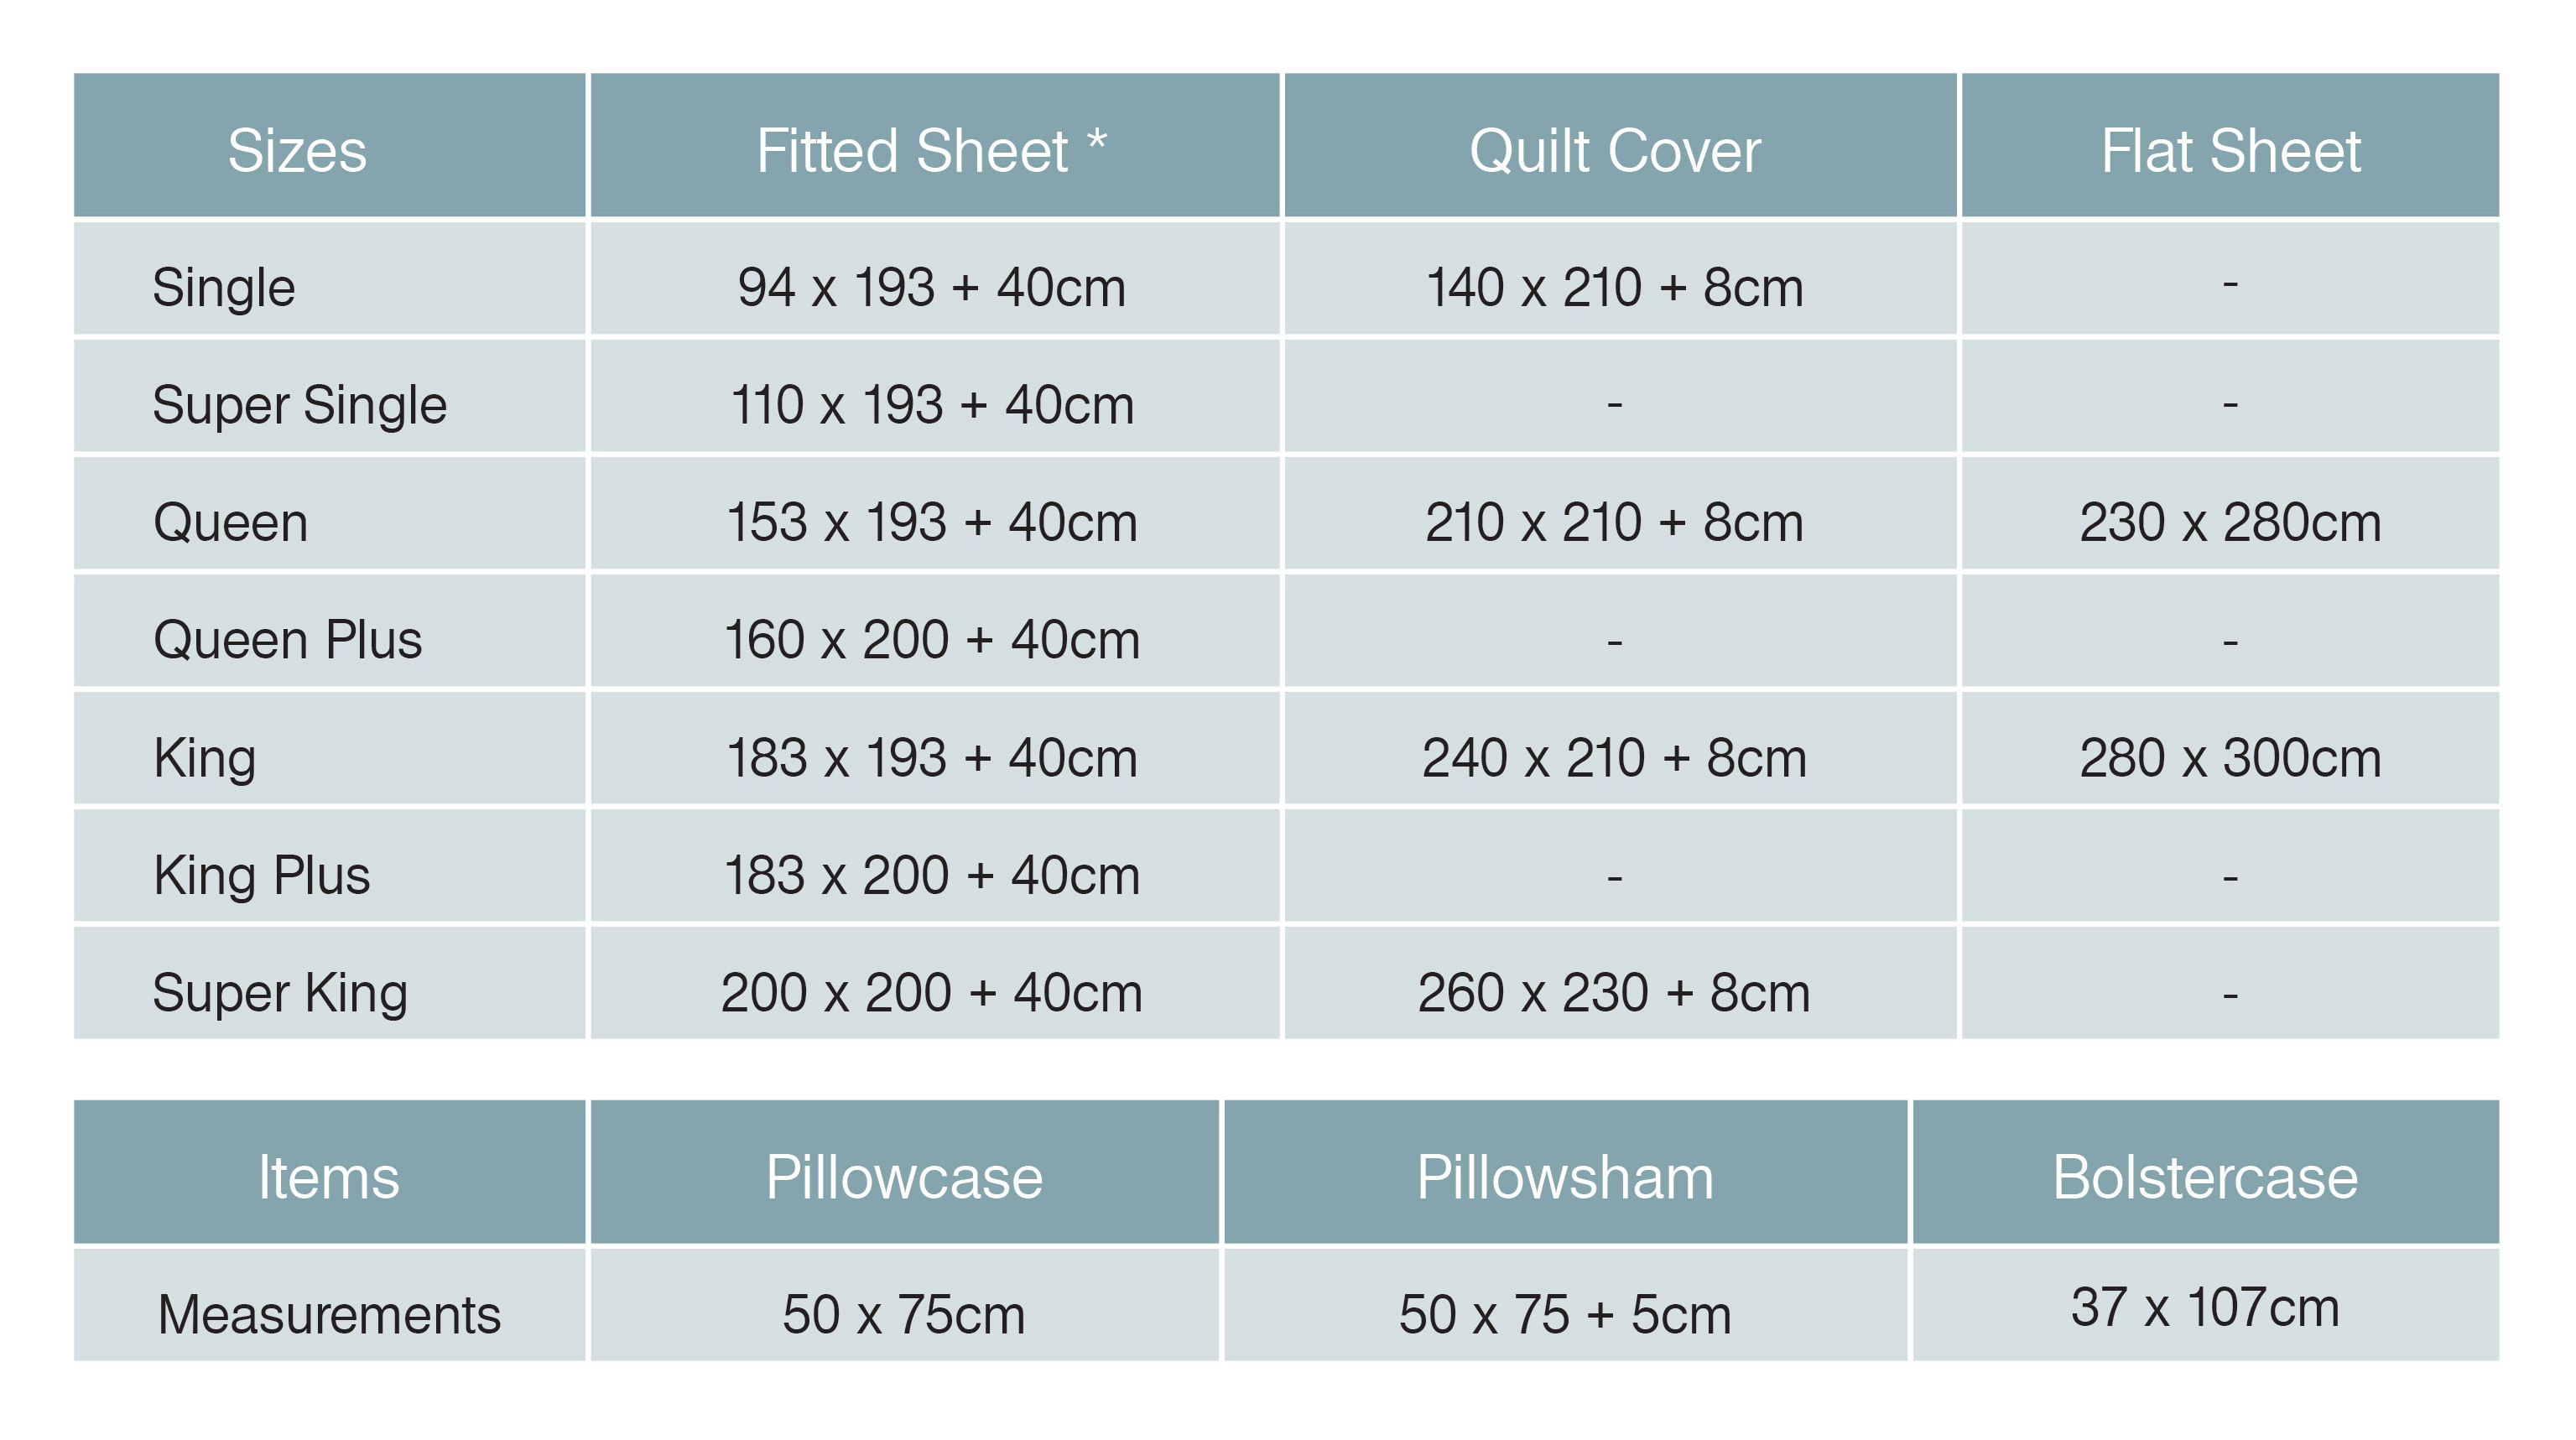 Standard Bed Sizes Bed Sheet And Bedding Sizes And Measurements Bedorigin My